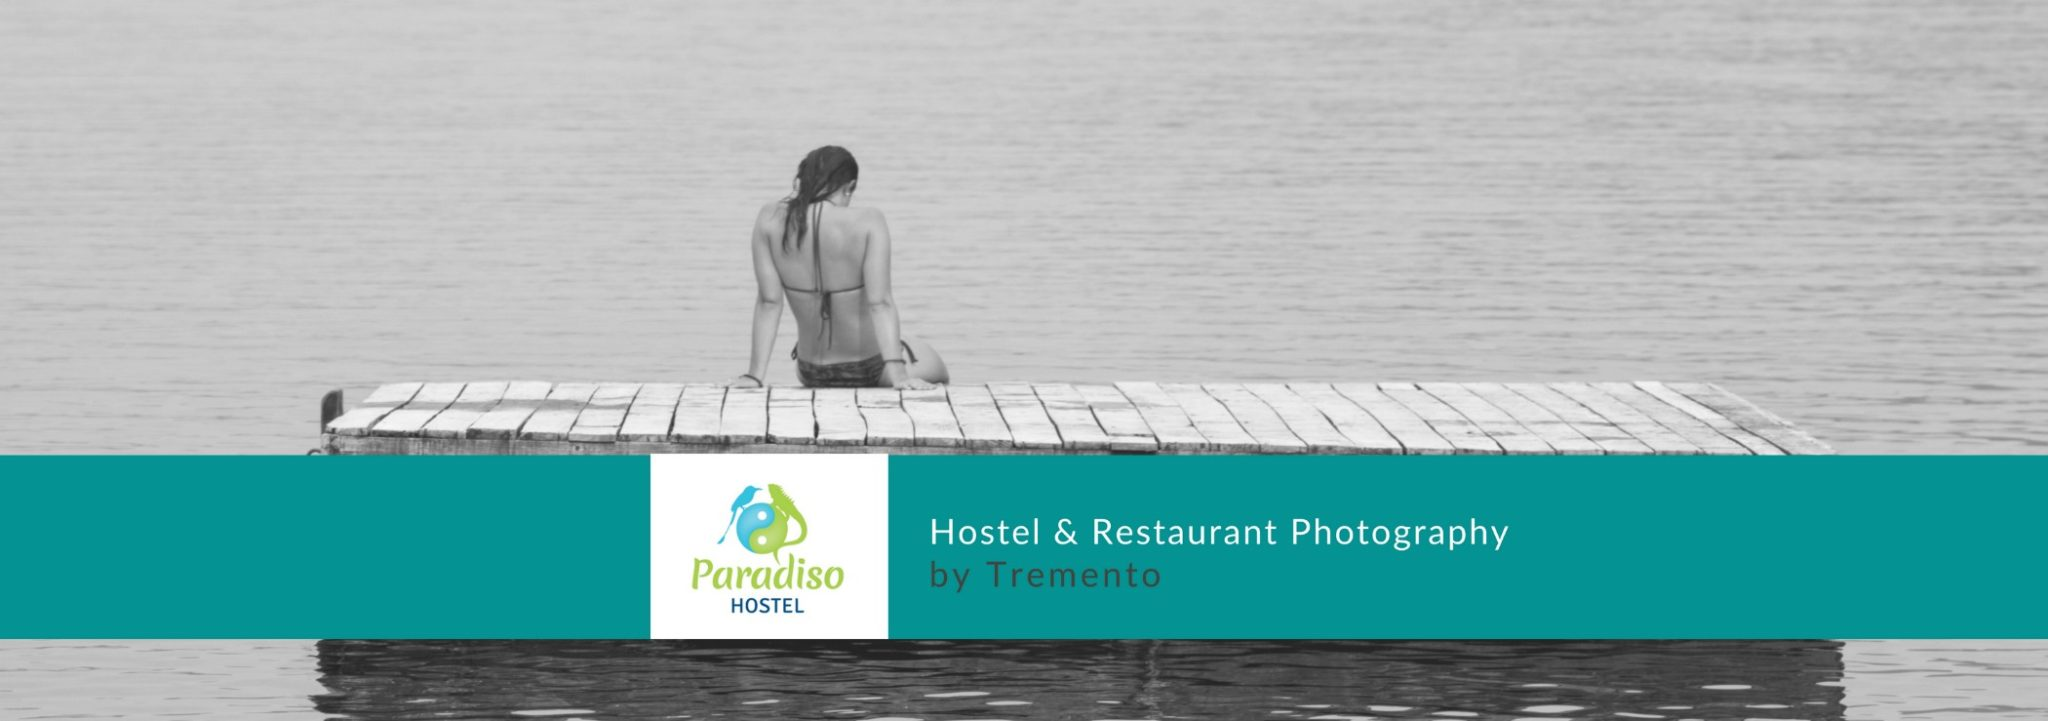 Tremento Hospitality Advertising - Hostel Photography - Paradiso